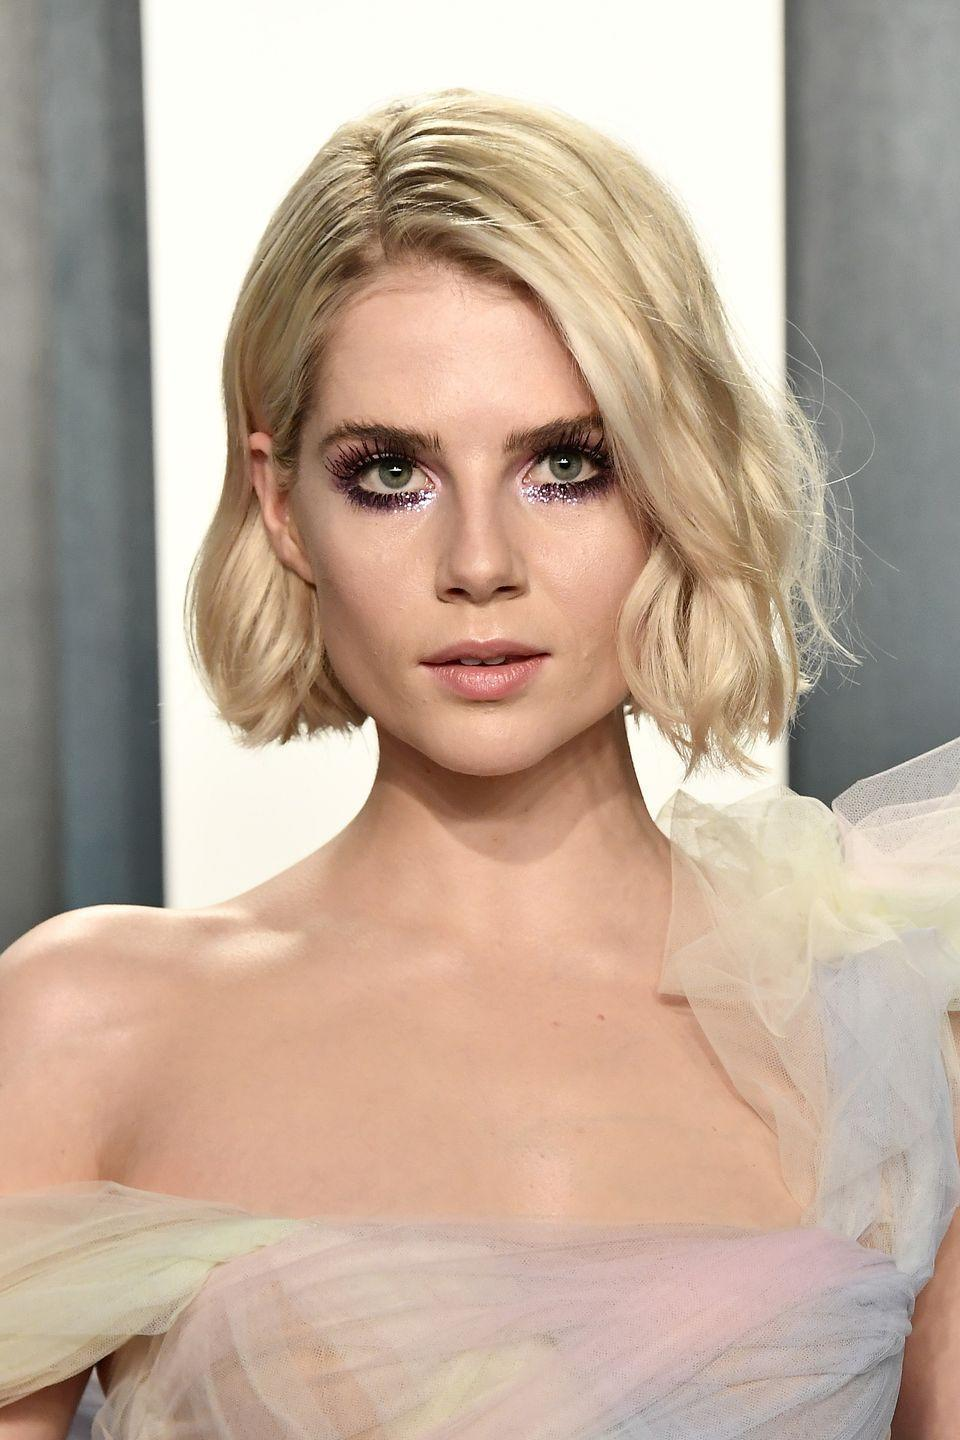 <p>After working a vintage Chanel-inspired bright red lip and pearl-embellished side parting for the main event, Boynton changed up her make-up for the Vanity Fair post-Oscars party. The actress switched her scarlet lip for a neutral balmy hue and added a dose of pink grunge glitter and extra long lashes.</p>